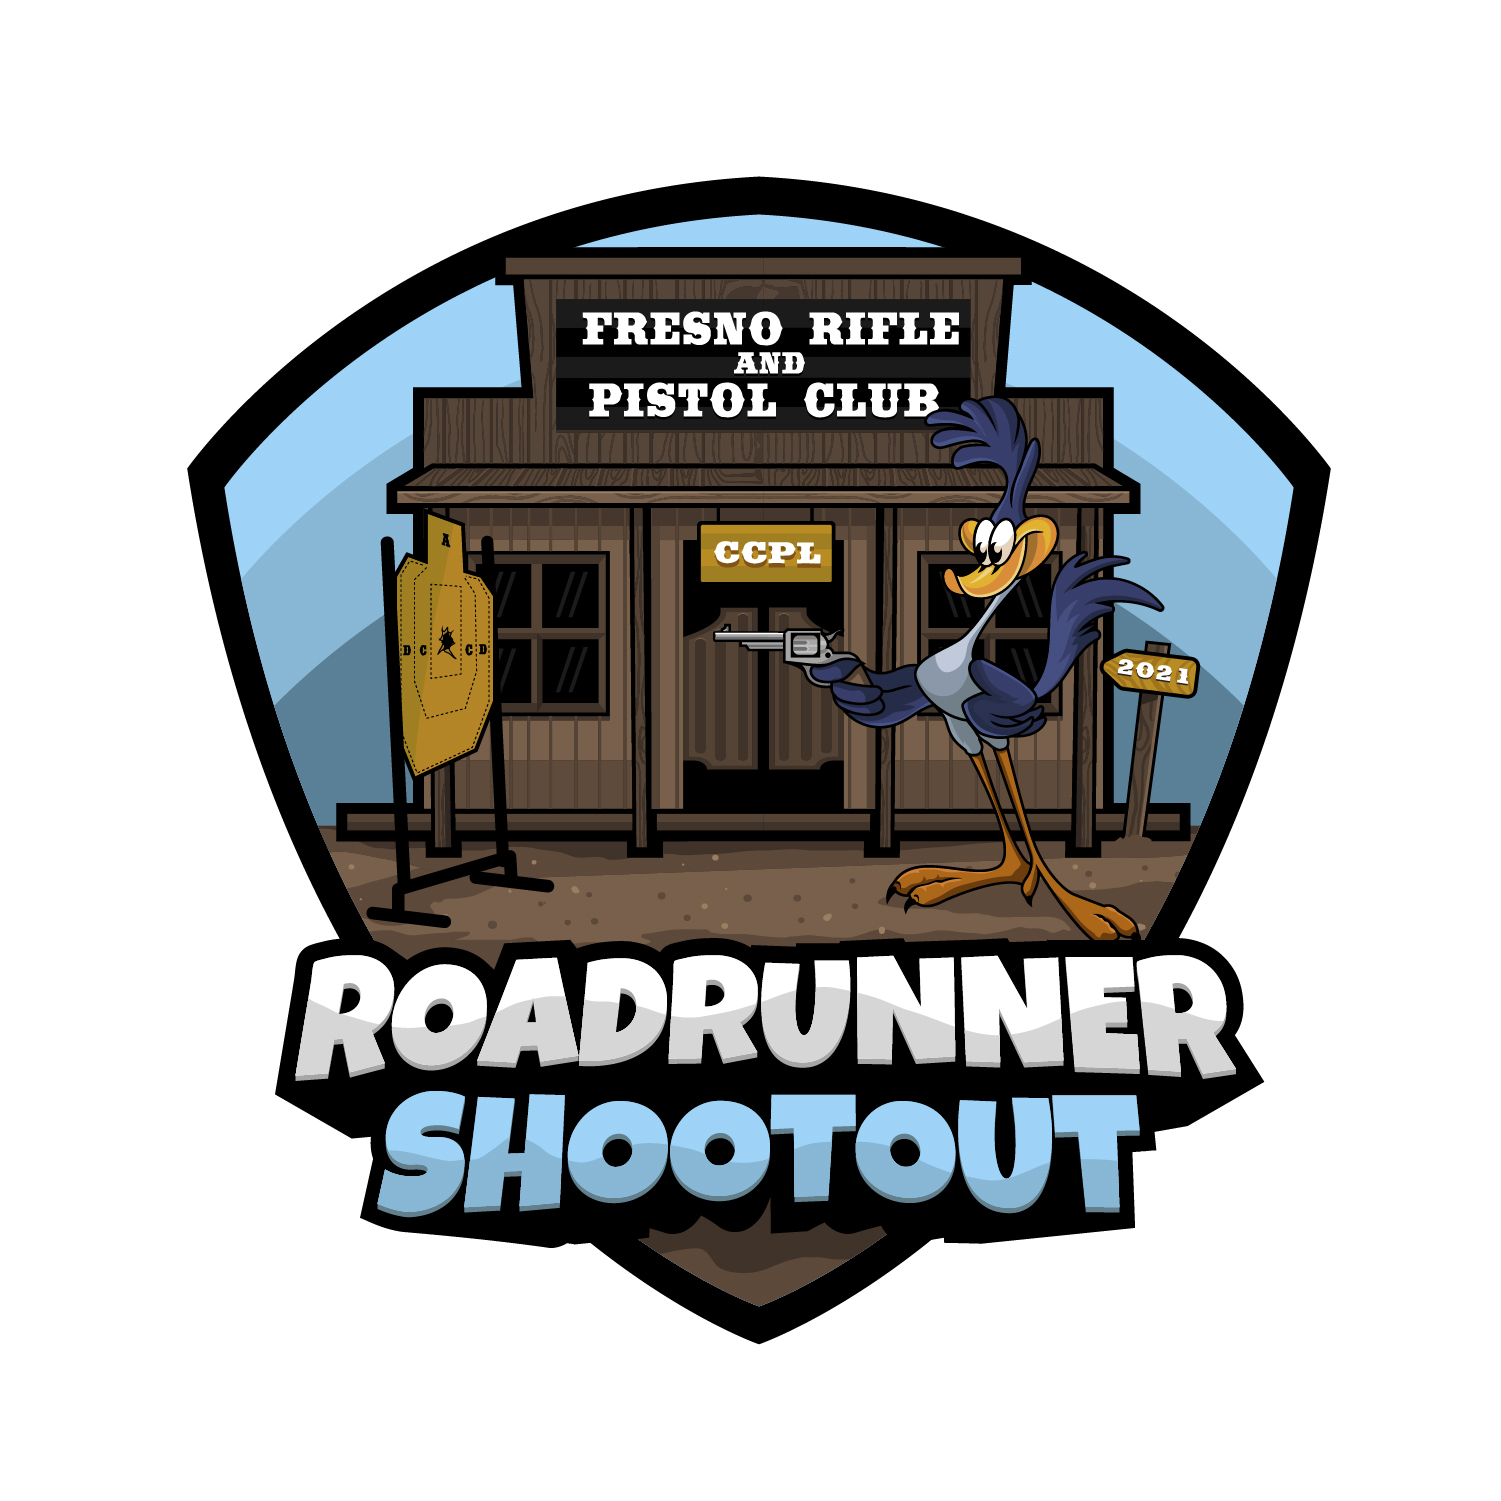 2021 Roadrunner Shootout